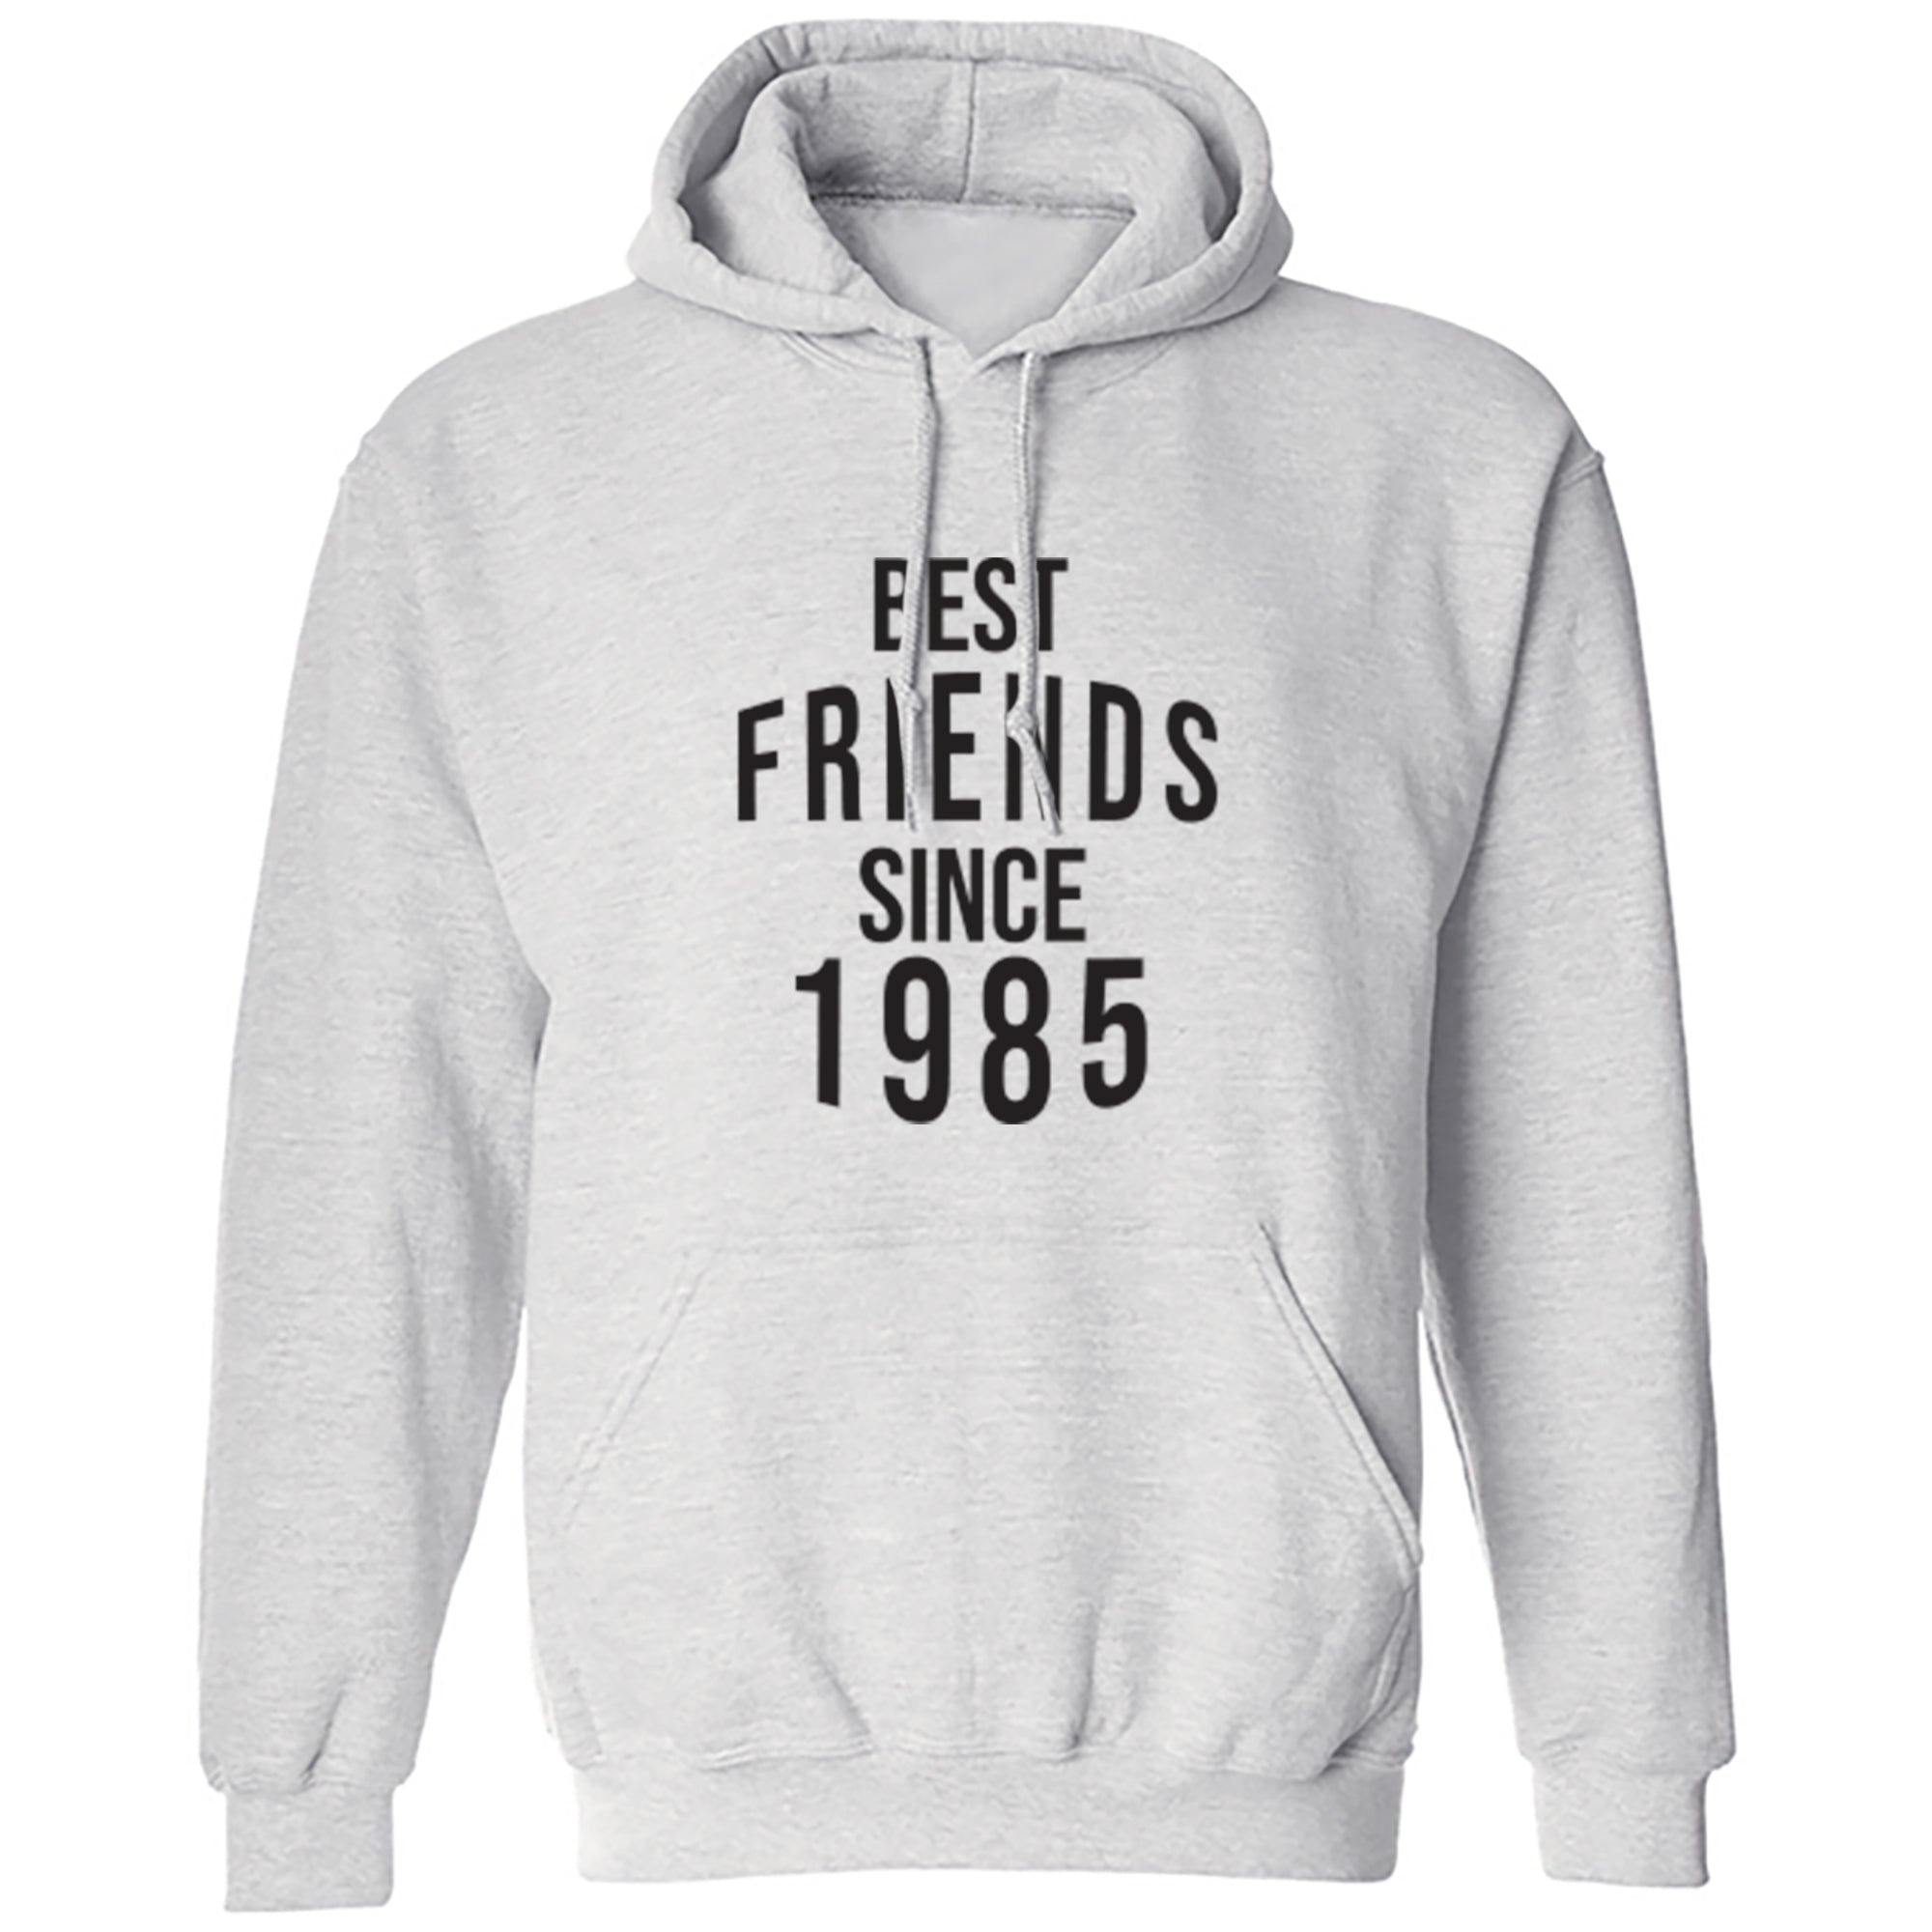 Best Friends Since 1985 Unisex Hoodie S0564 - Illustrated Identity Ltd.